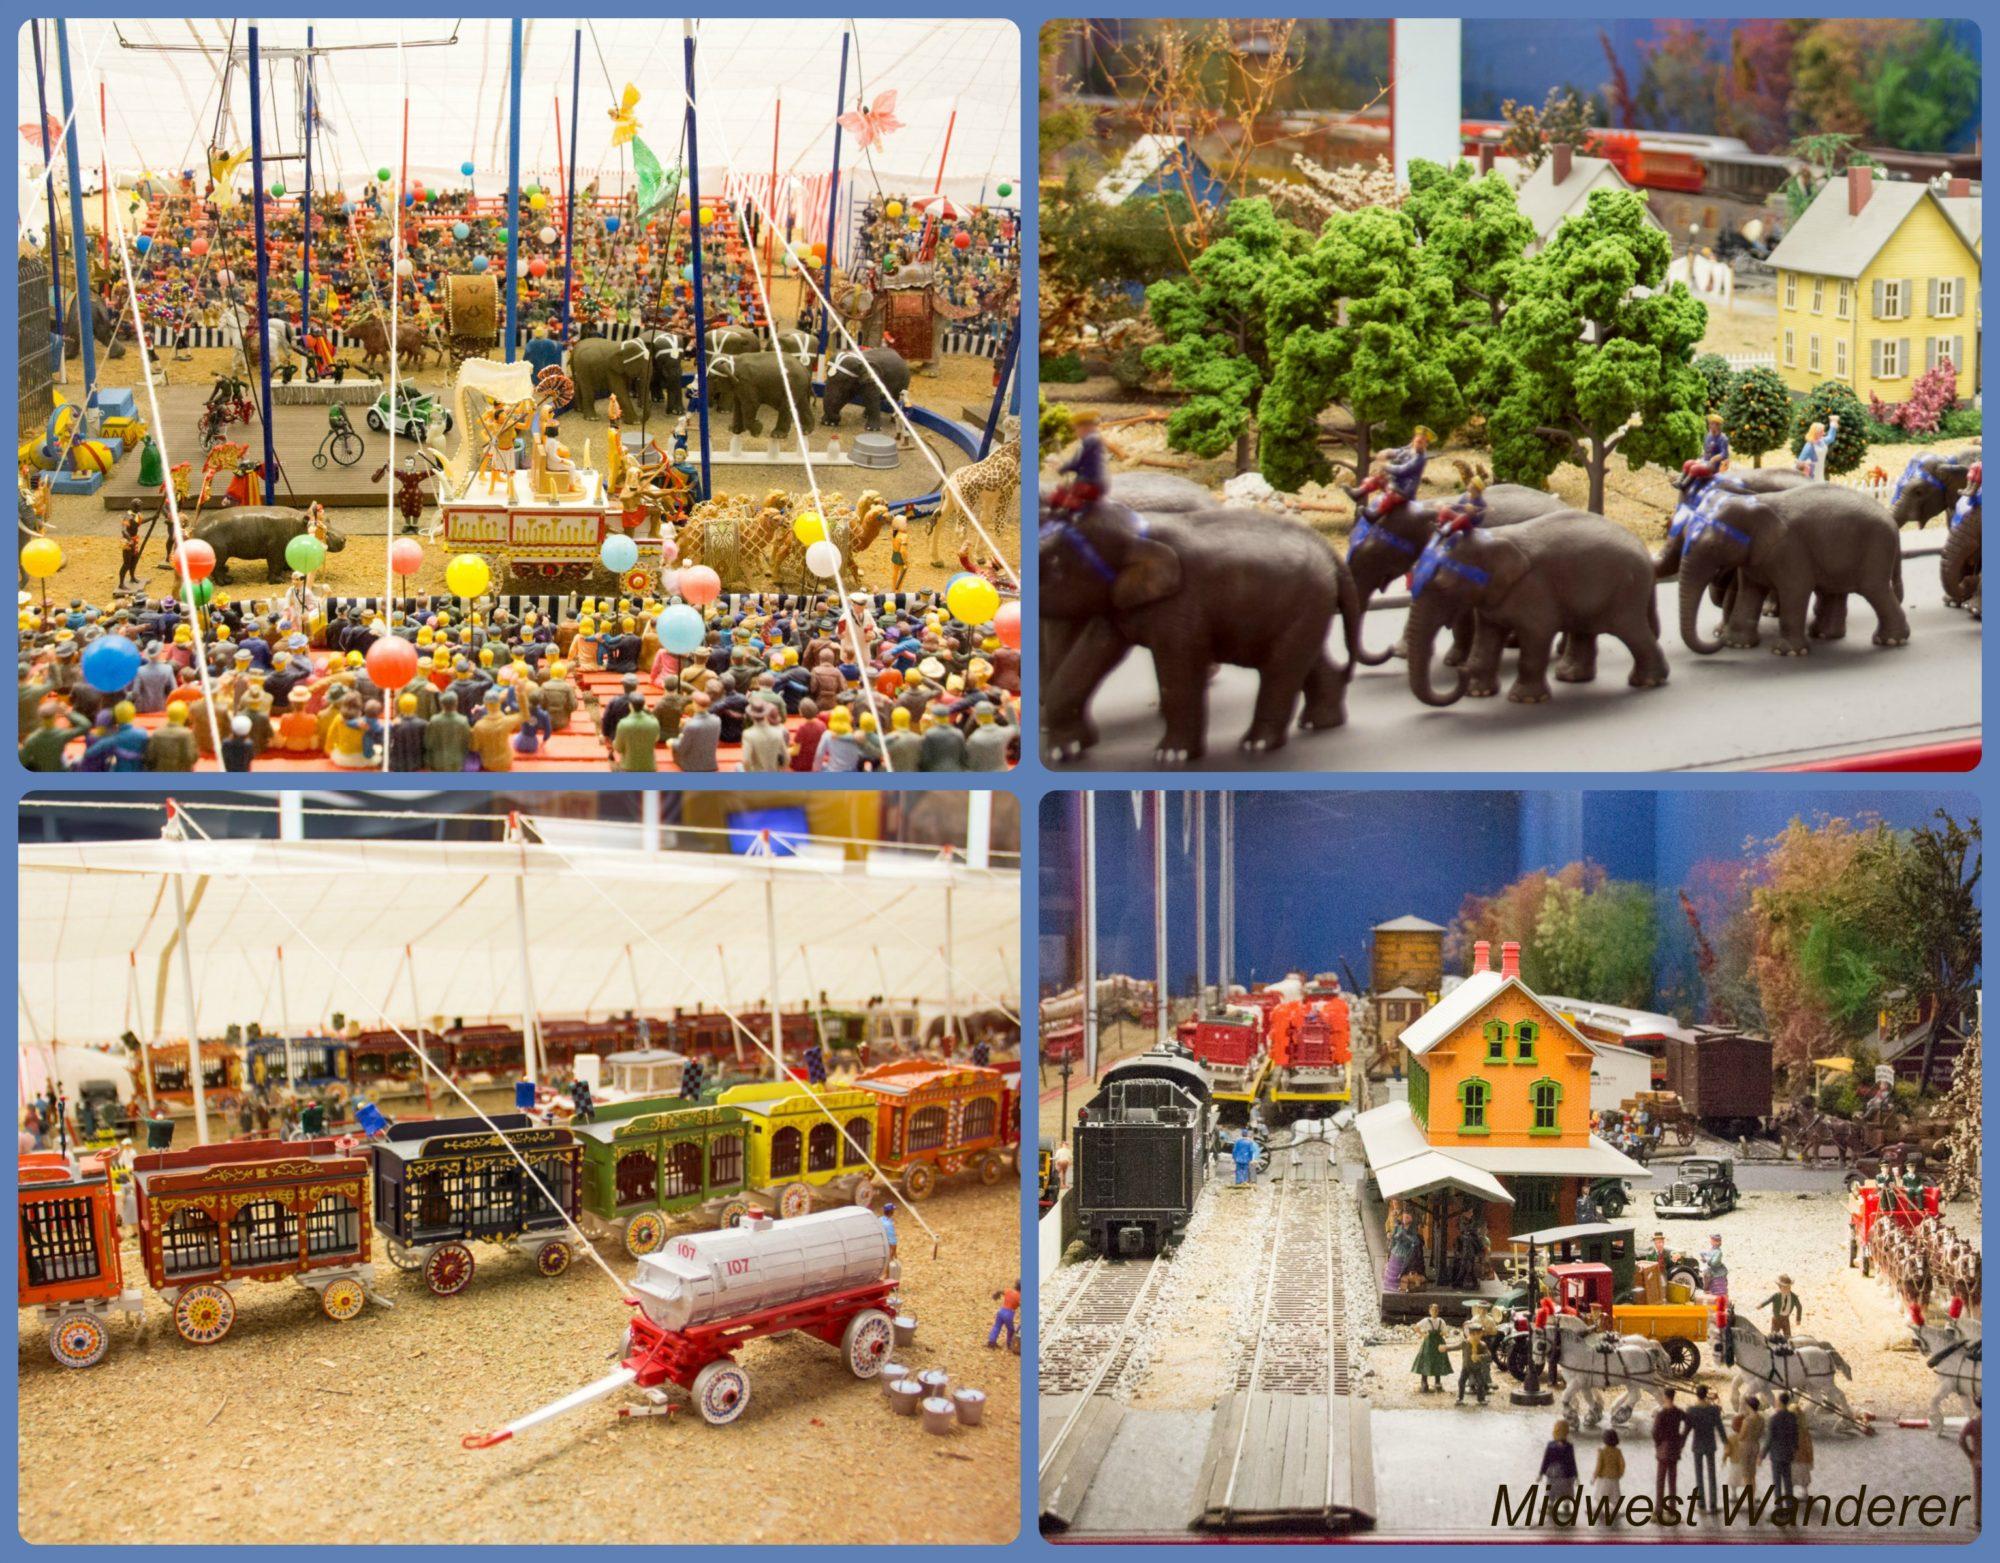 French Lick West Baden circus diorama